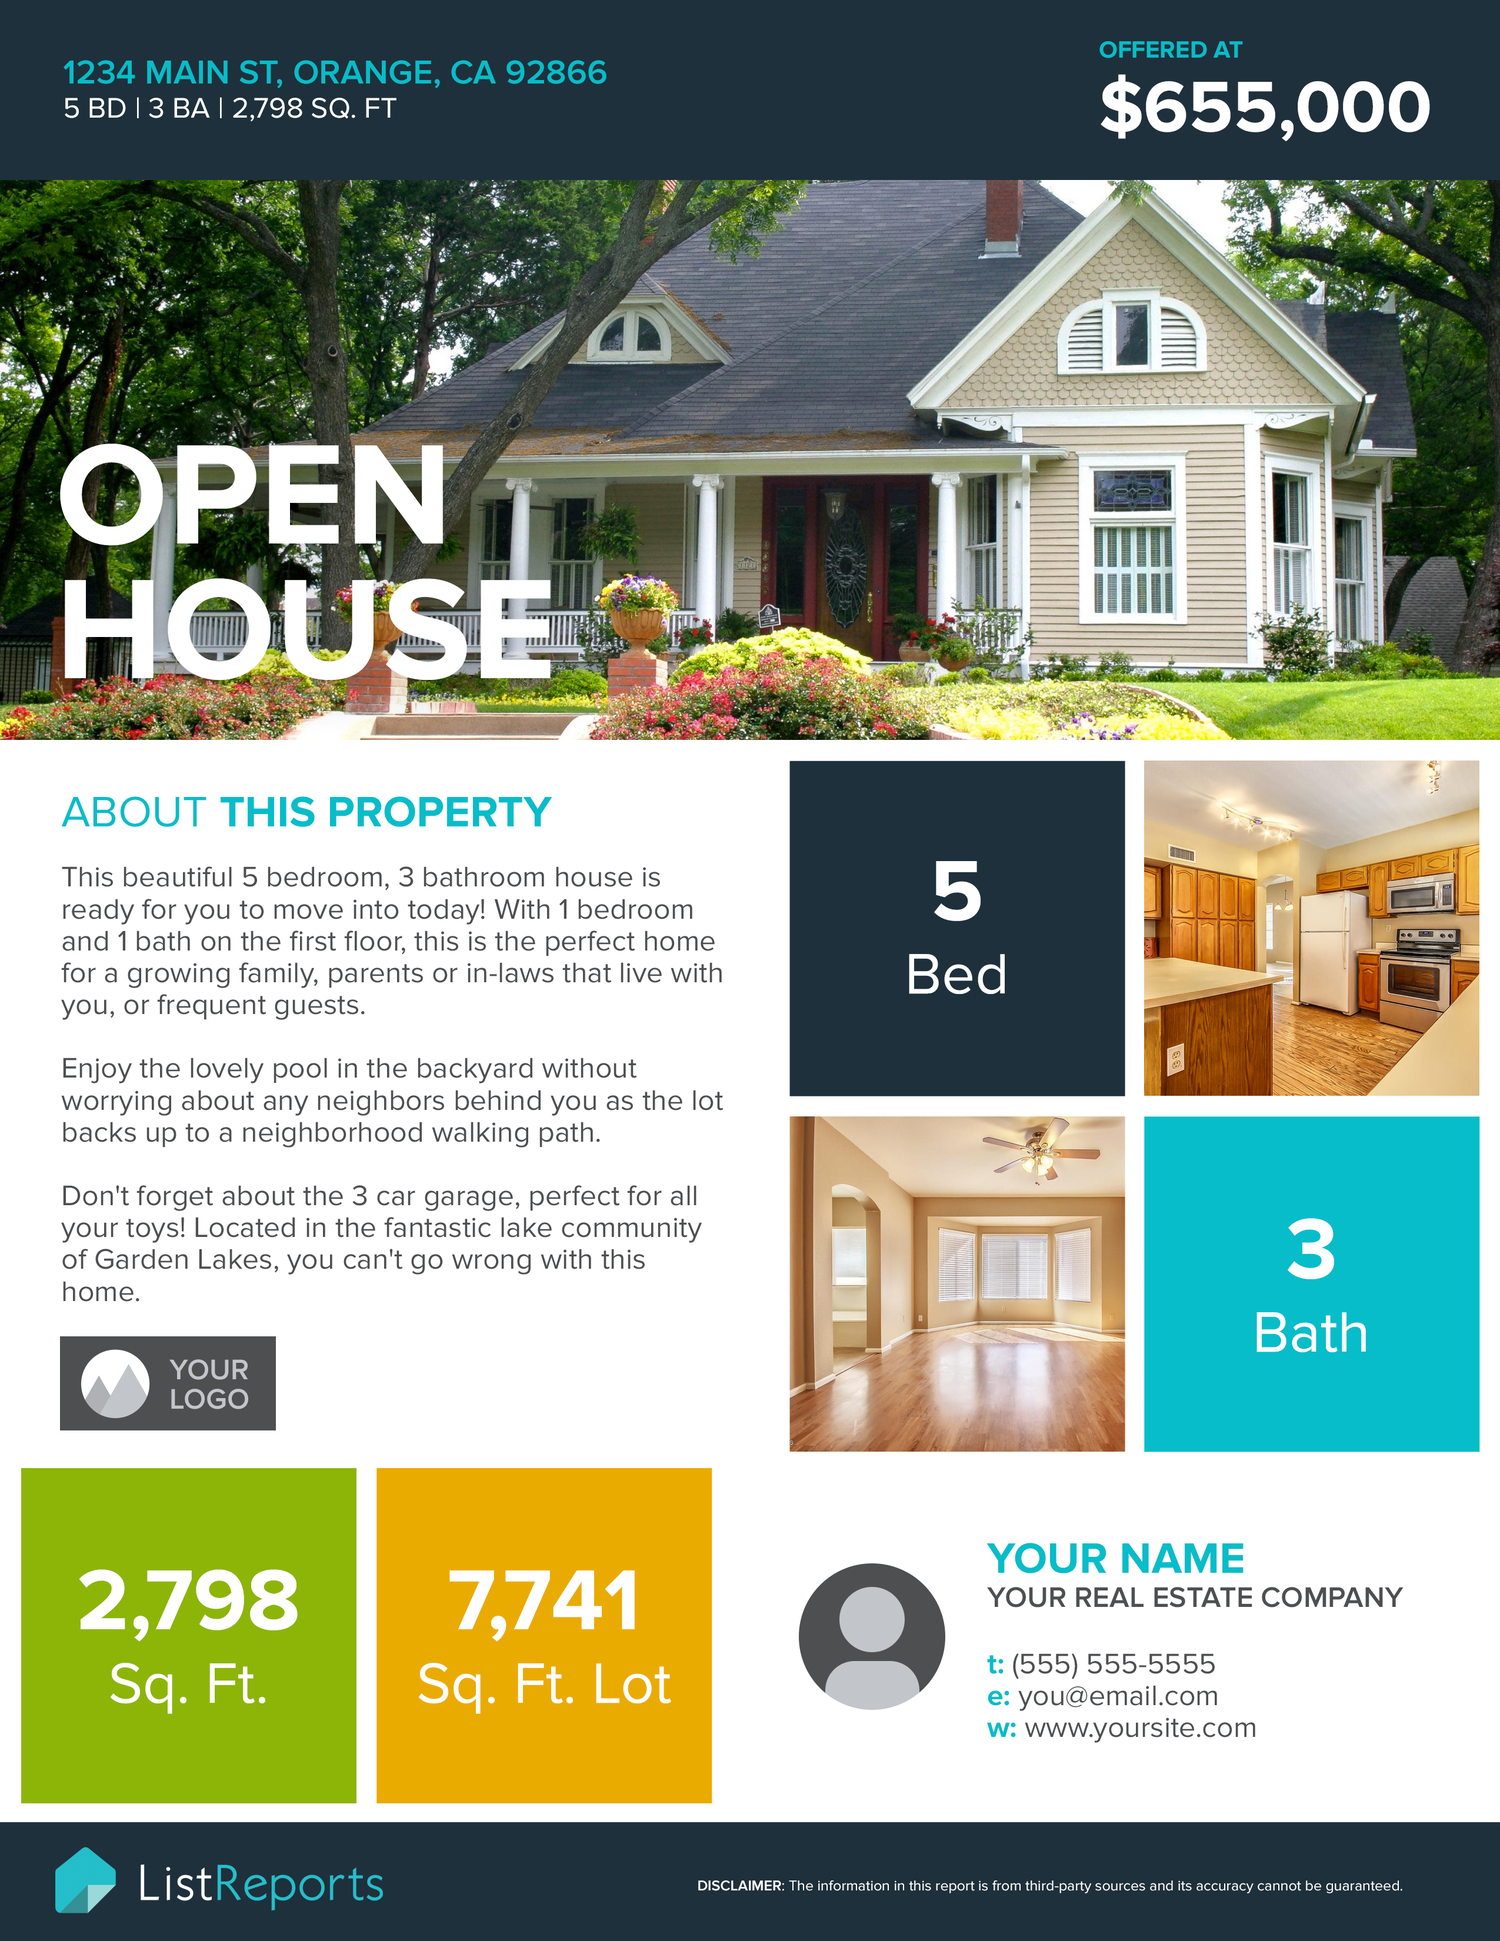 open house flyer sample listreports open house flyer sample